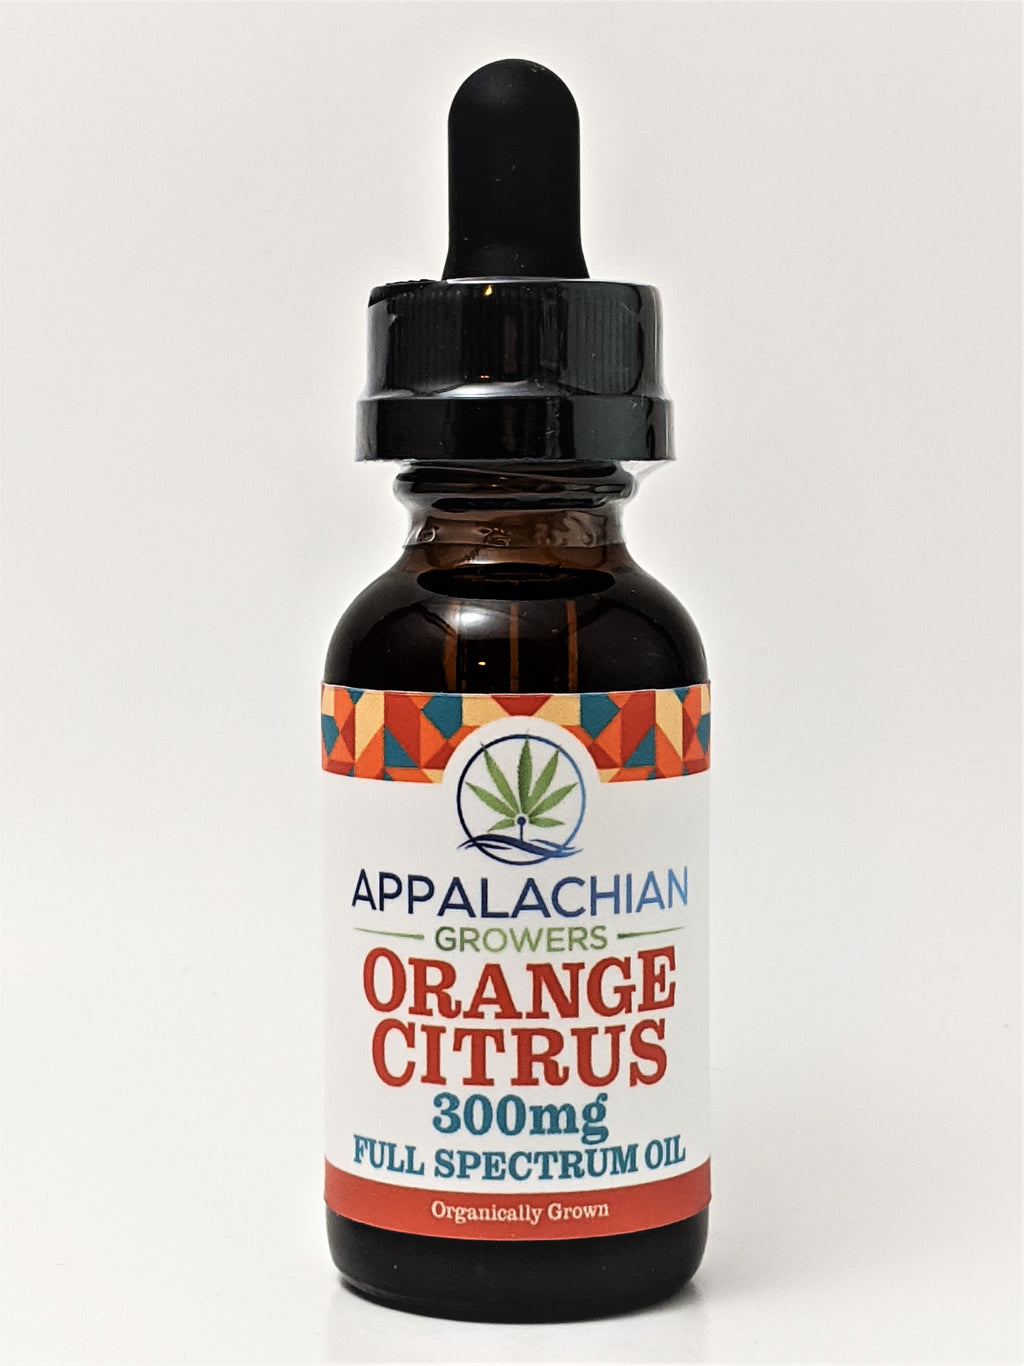 Appalachian Growers 300 mg Full Spectrum Oil - Orange Citrus - CBD Central